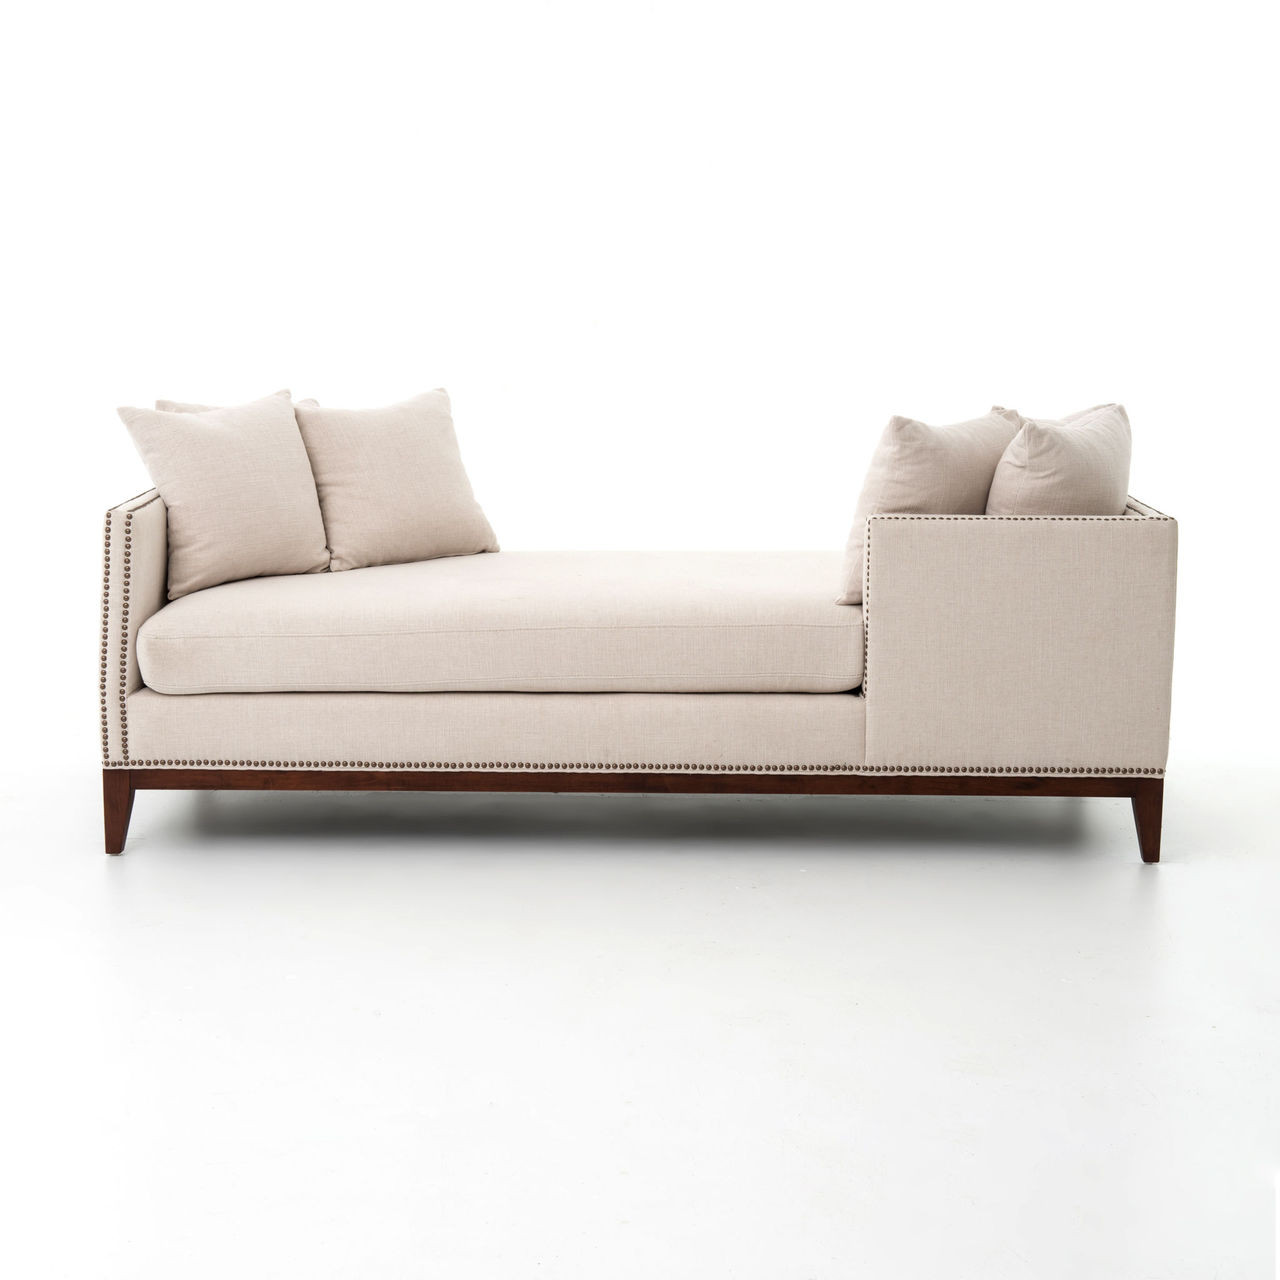 kensington chaise sofa bed l shaped cheap beige linen upholstered double daybed